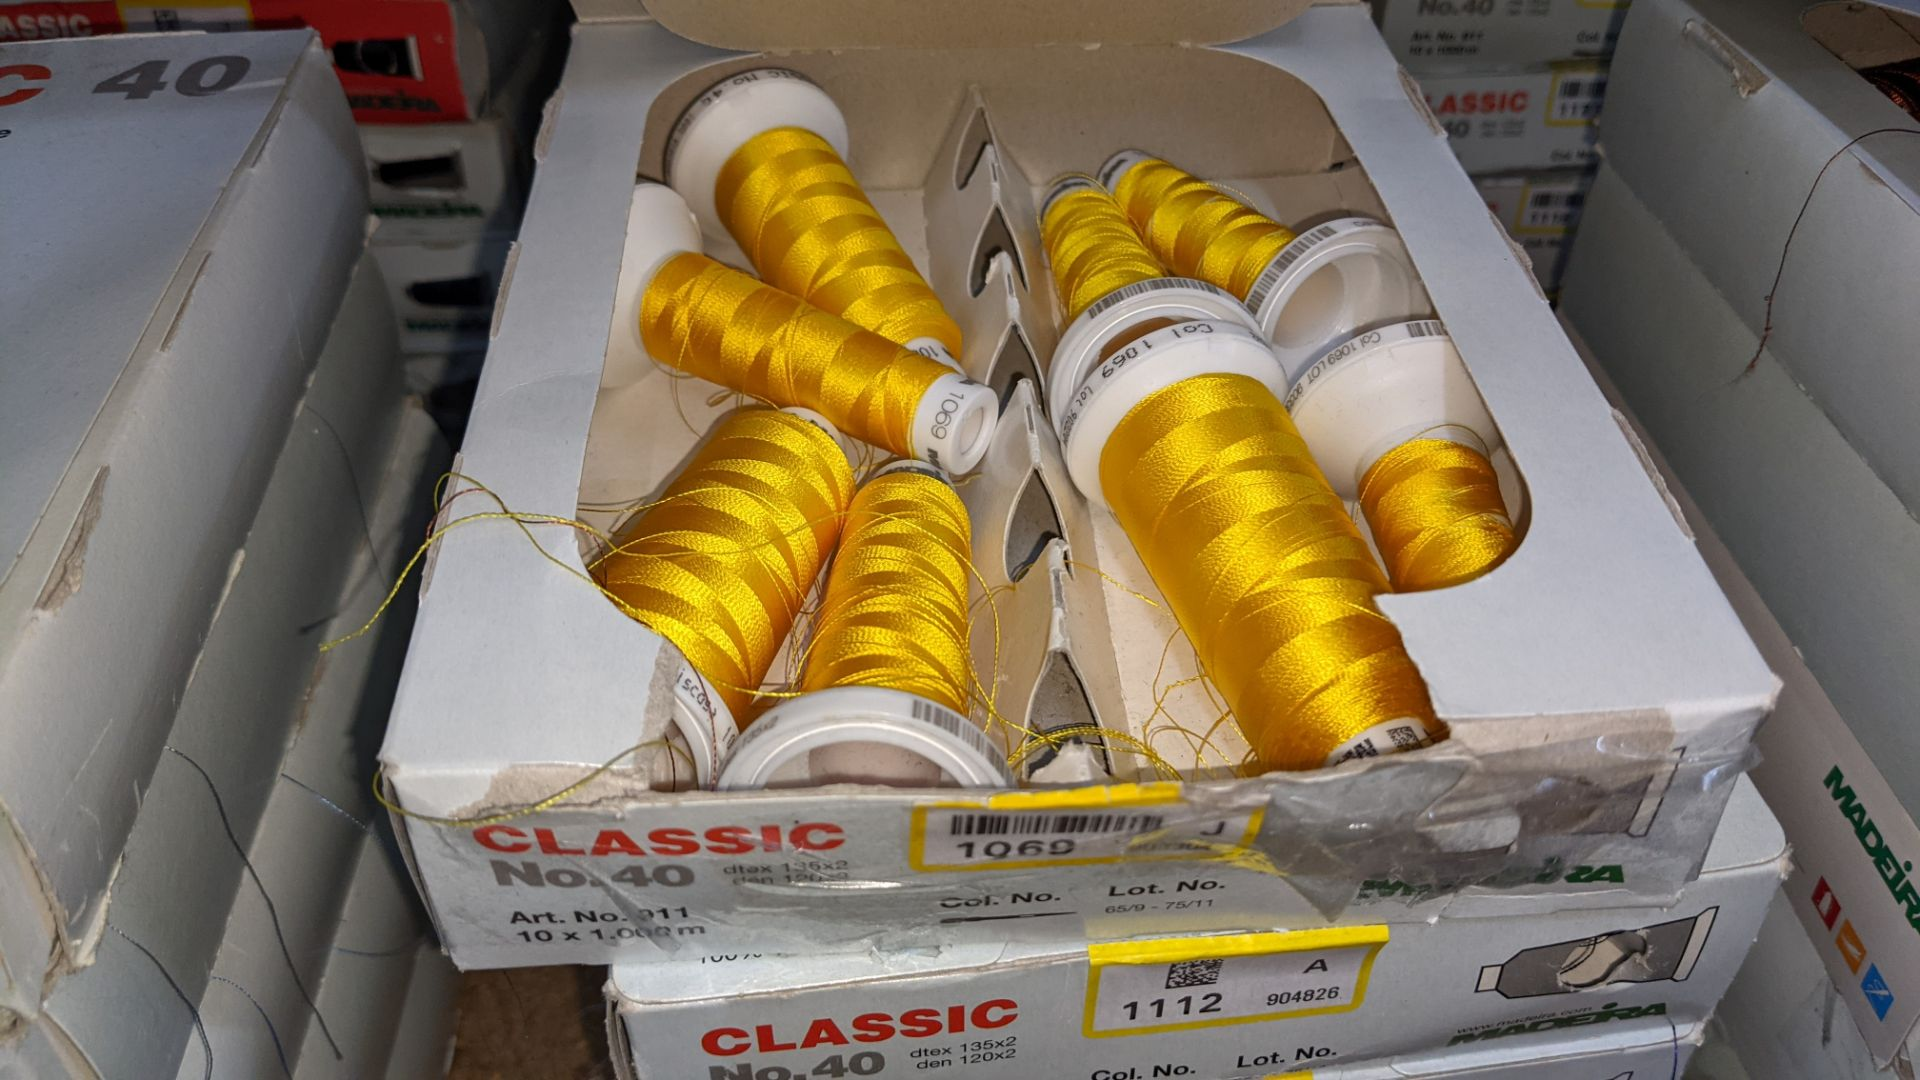 20 assorted boxes of Madeira Classic No. 40 embroidery rayon thread - Image 6 of 8